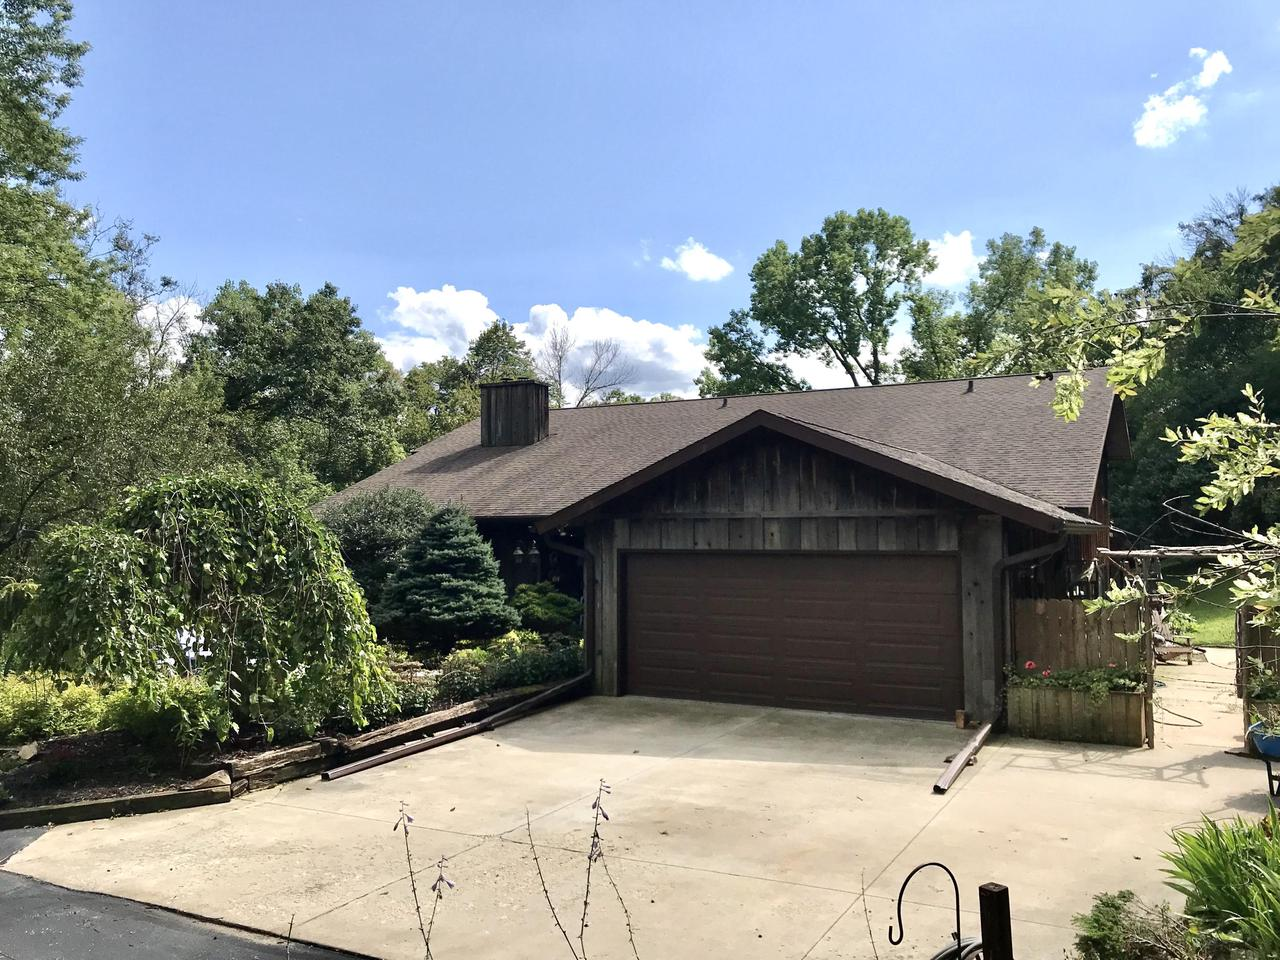 Terrific Cedar contemporary one owner home with 4brs, 3.5 baths on over 7.5 private wooded acres.  The home is surrounded with special walkways and gorgeous gardens.....and an above ground pool and decking for summer fun. This home has been loved and enjoyed for 50 years.  Three fireplaces, formal dining area and huge living room....big enough for a grand piano! Large welcoming foyer. Peaceful den, well appointed kitchen with custom cabinets and plenty of sunlight. Main level family room and rec room with custom built bar. Laundry room also has a walk in shower, stool and sink.  Barn on lower part of land is being sold as is.  Master suite features double sinks, and walk in dressing area.  Three other good size bedrooms and large main bath.Home Warranty included.  Horses are allowed .